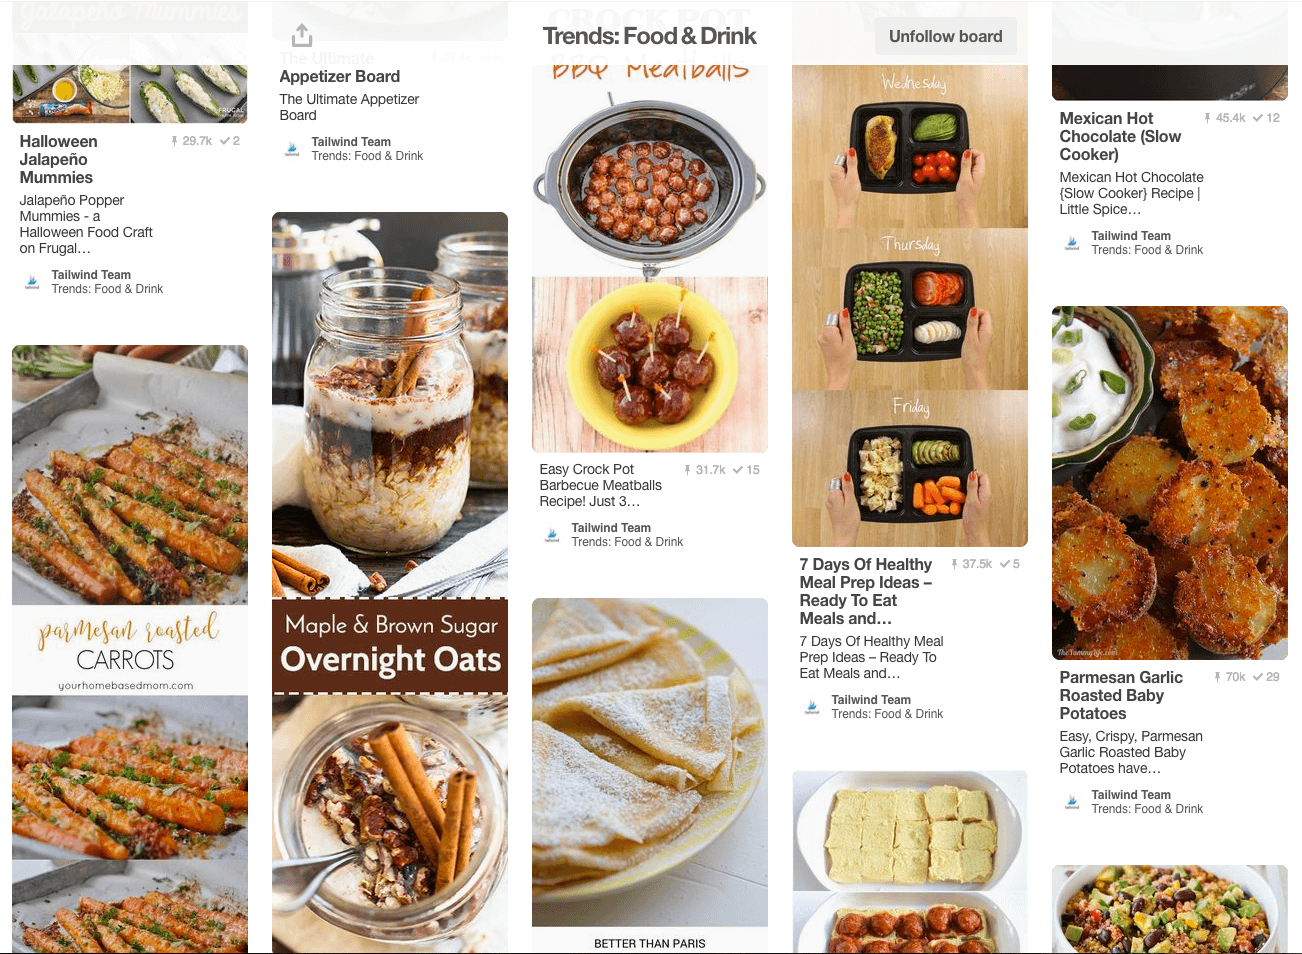 August Food & Drink Trends on Pinterest